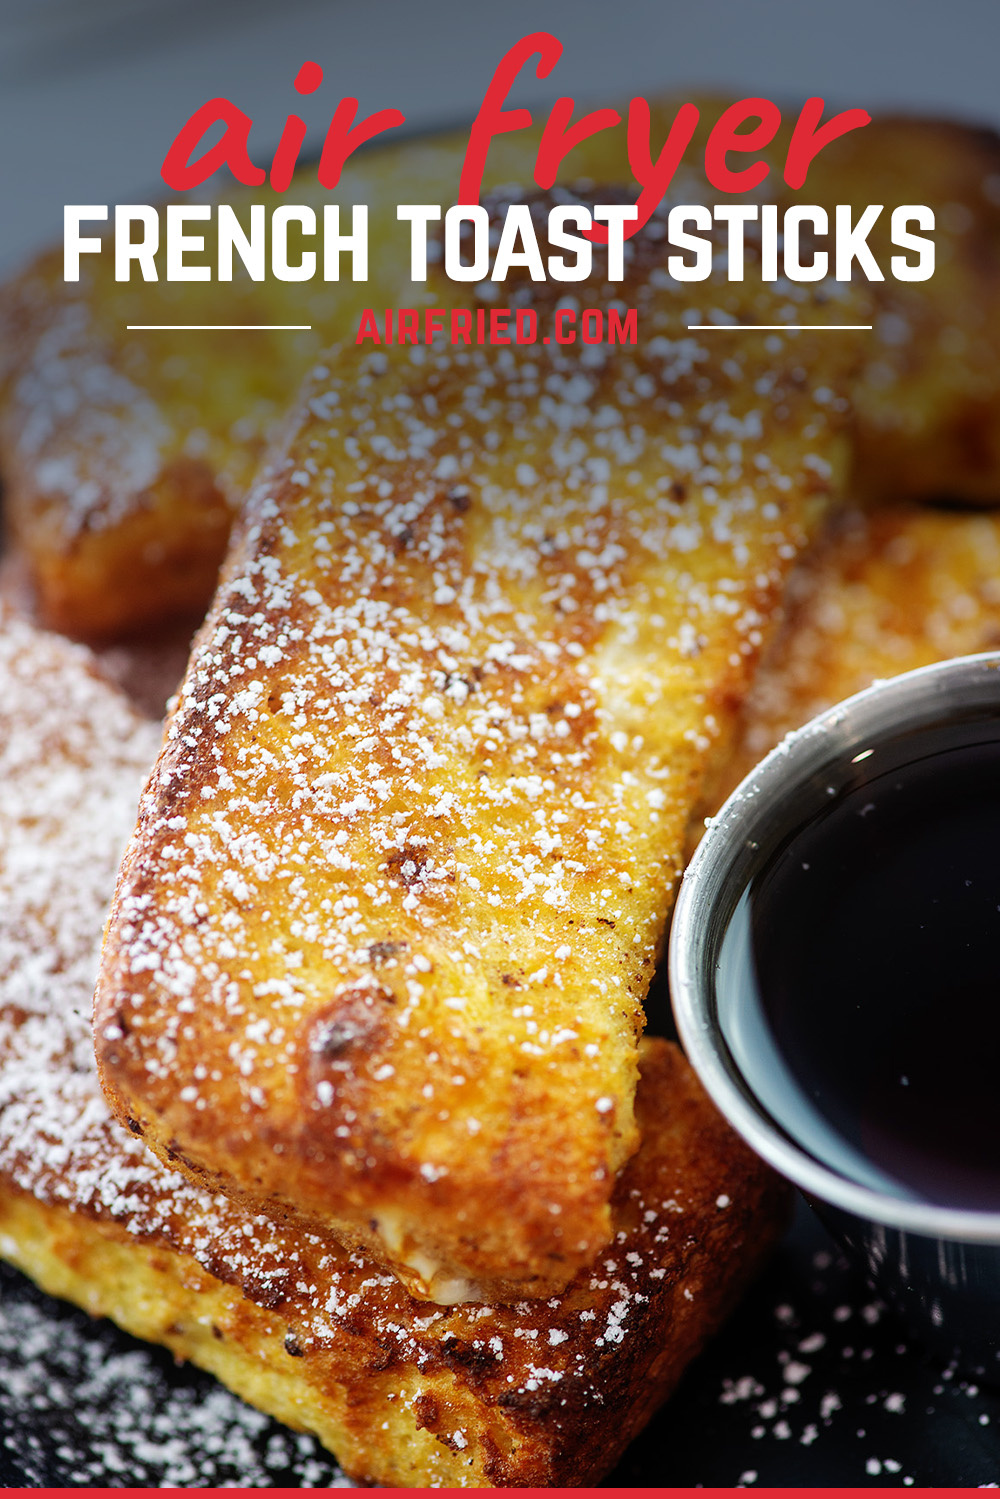 Close up of a pile of French toast sticks